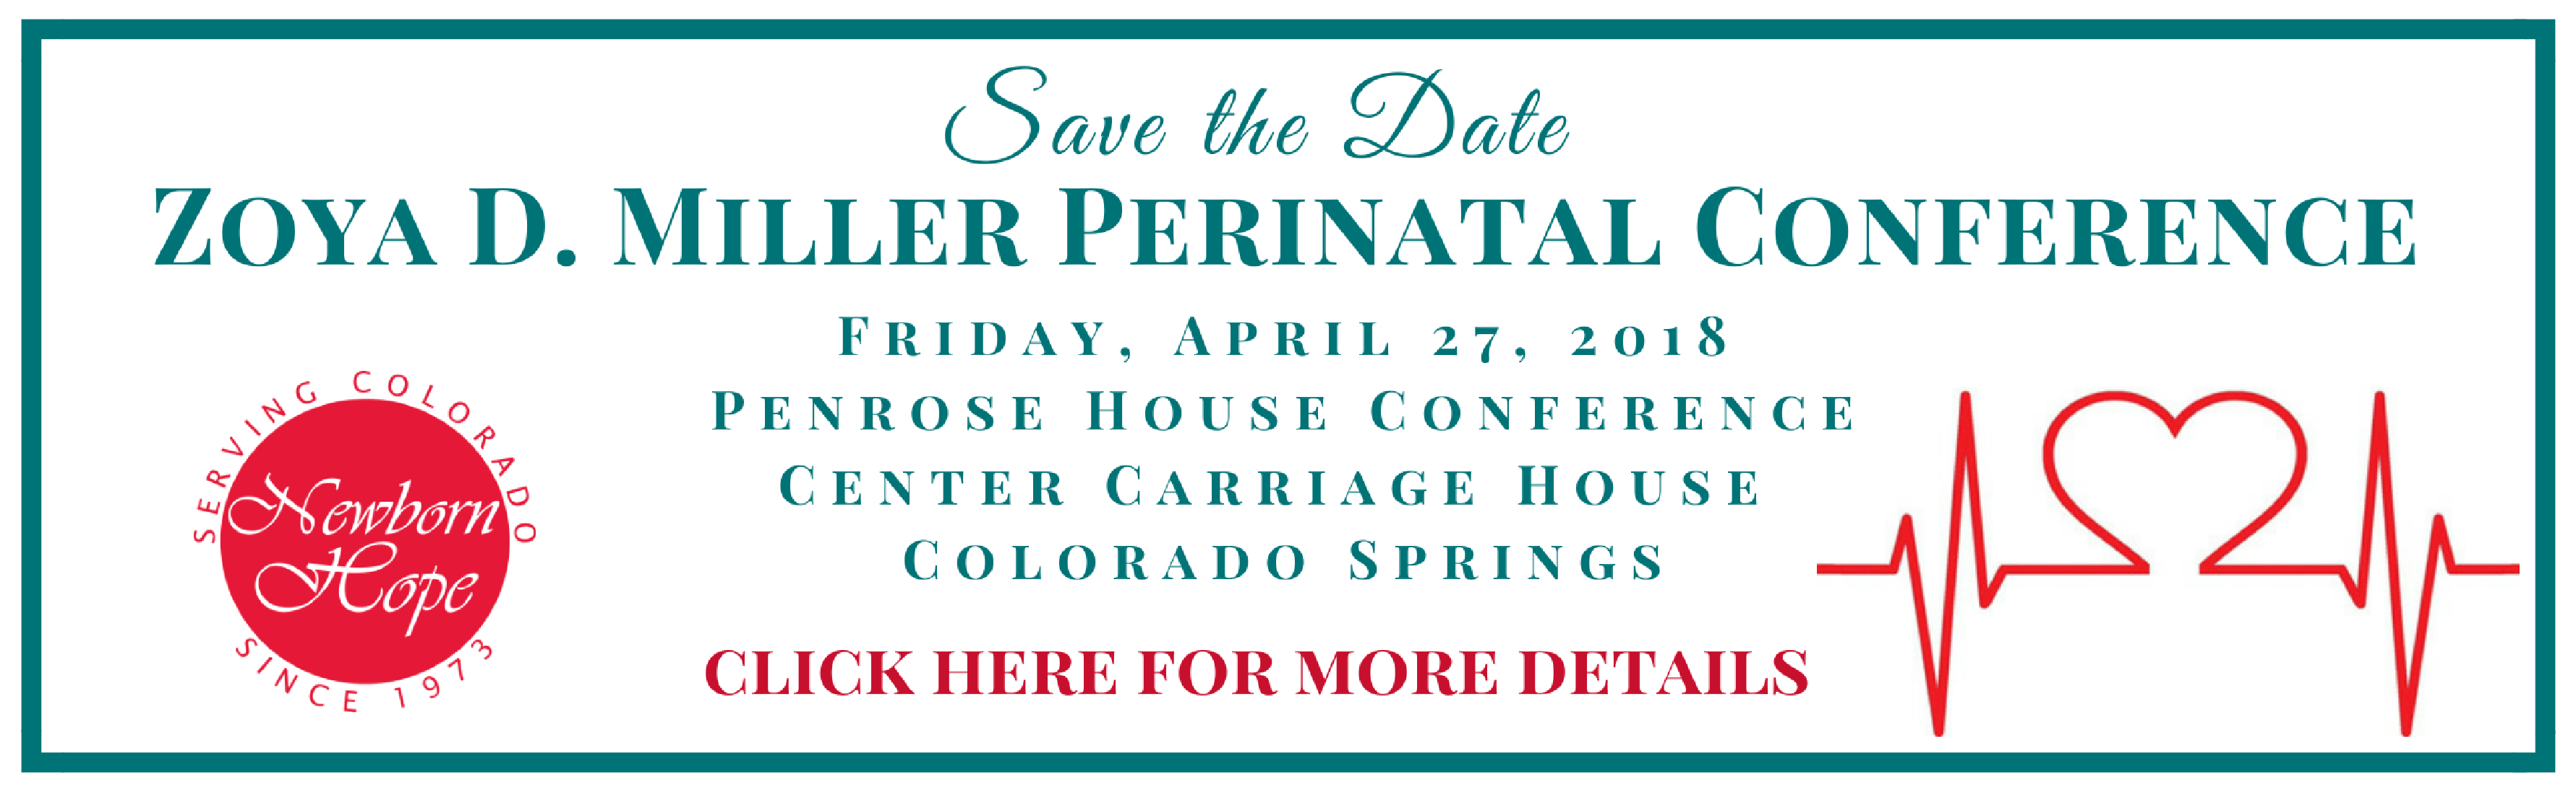 perinatal conference banner(2)